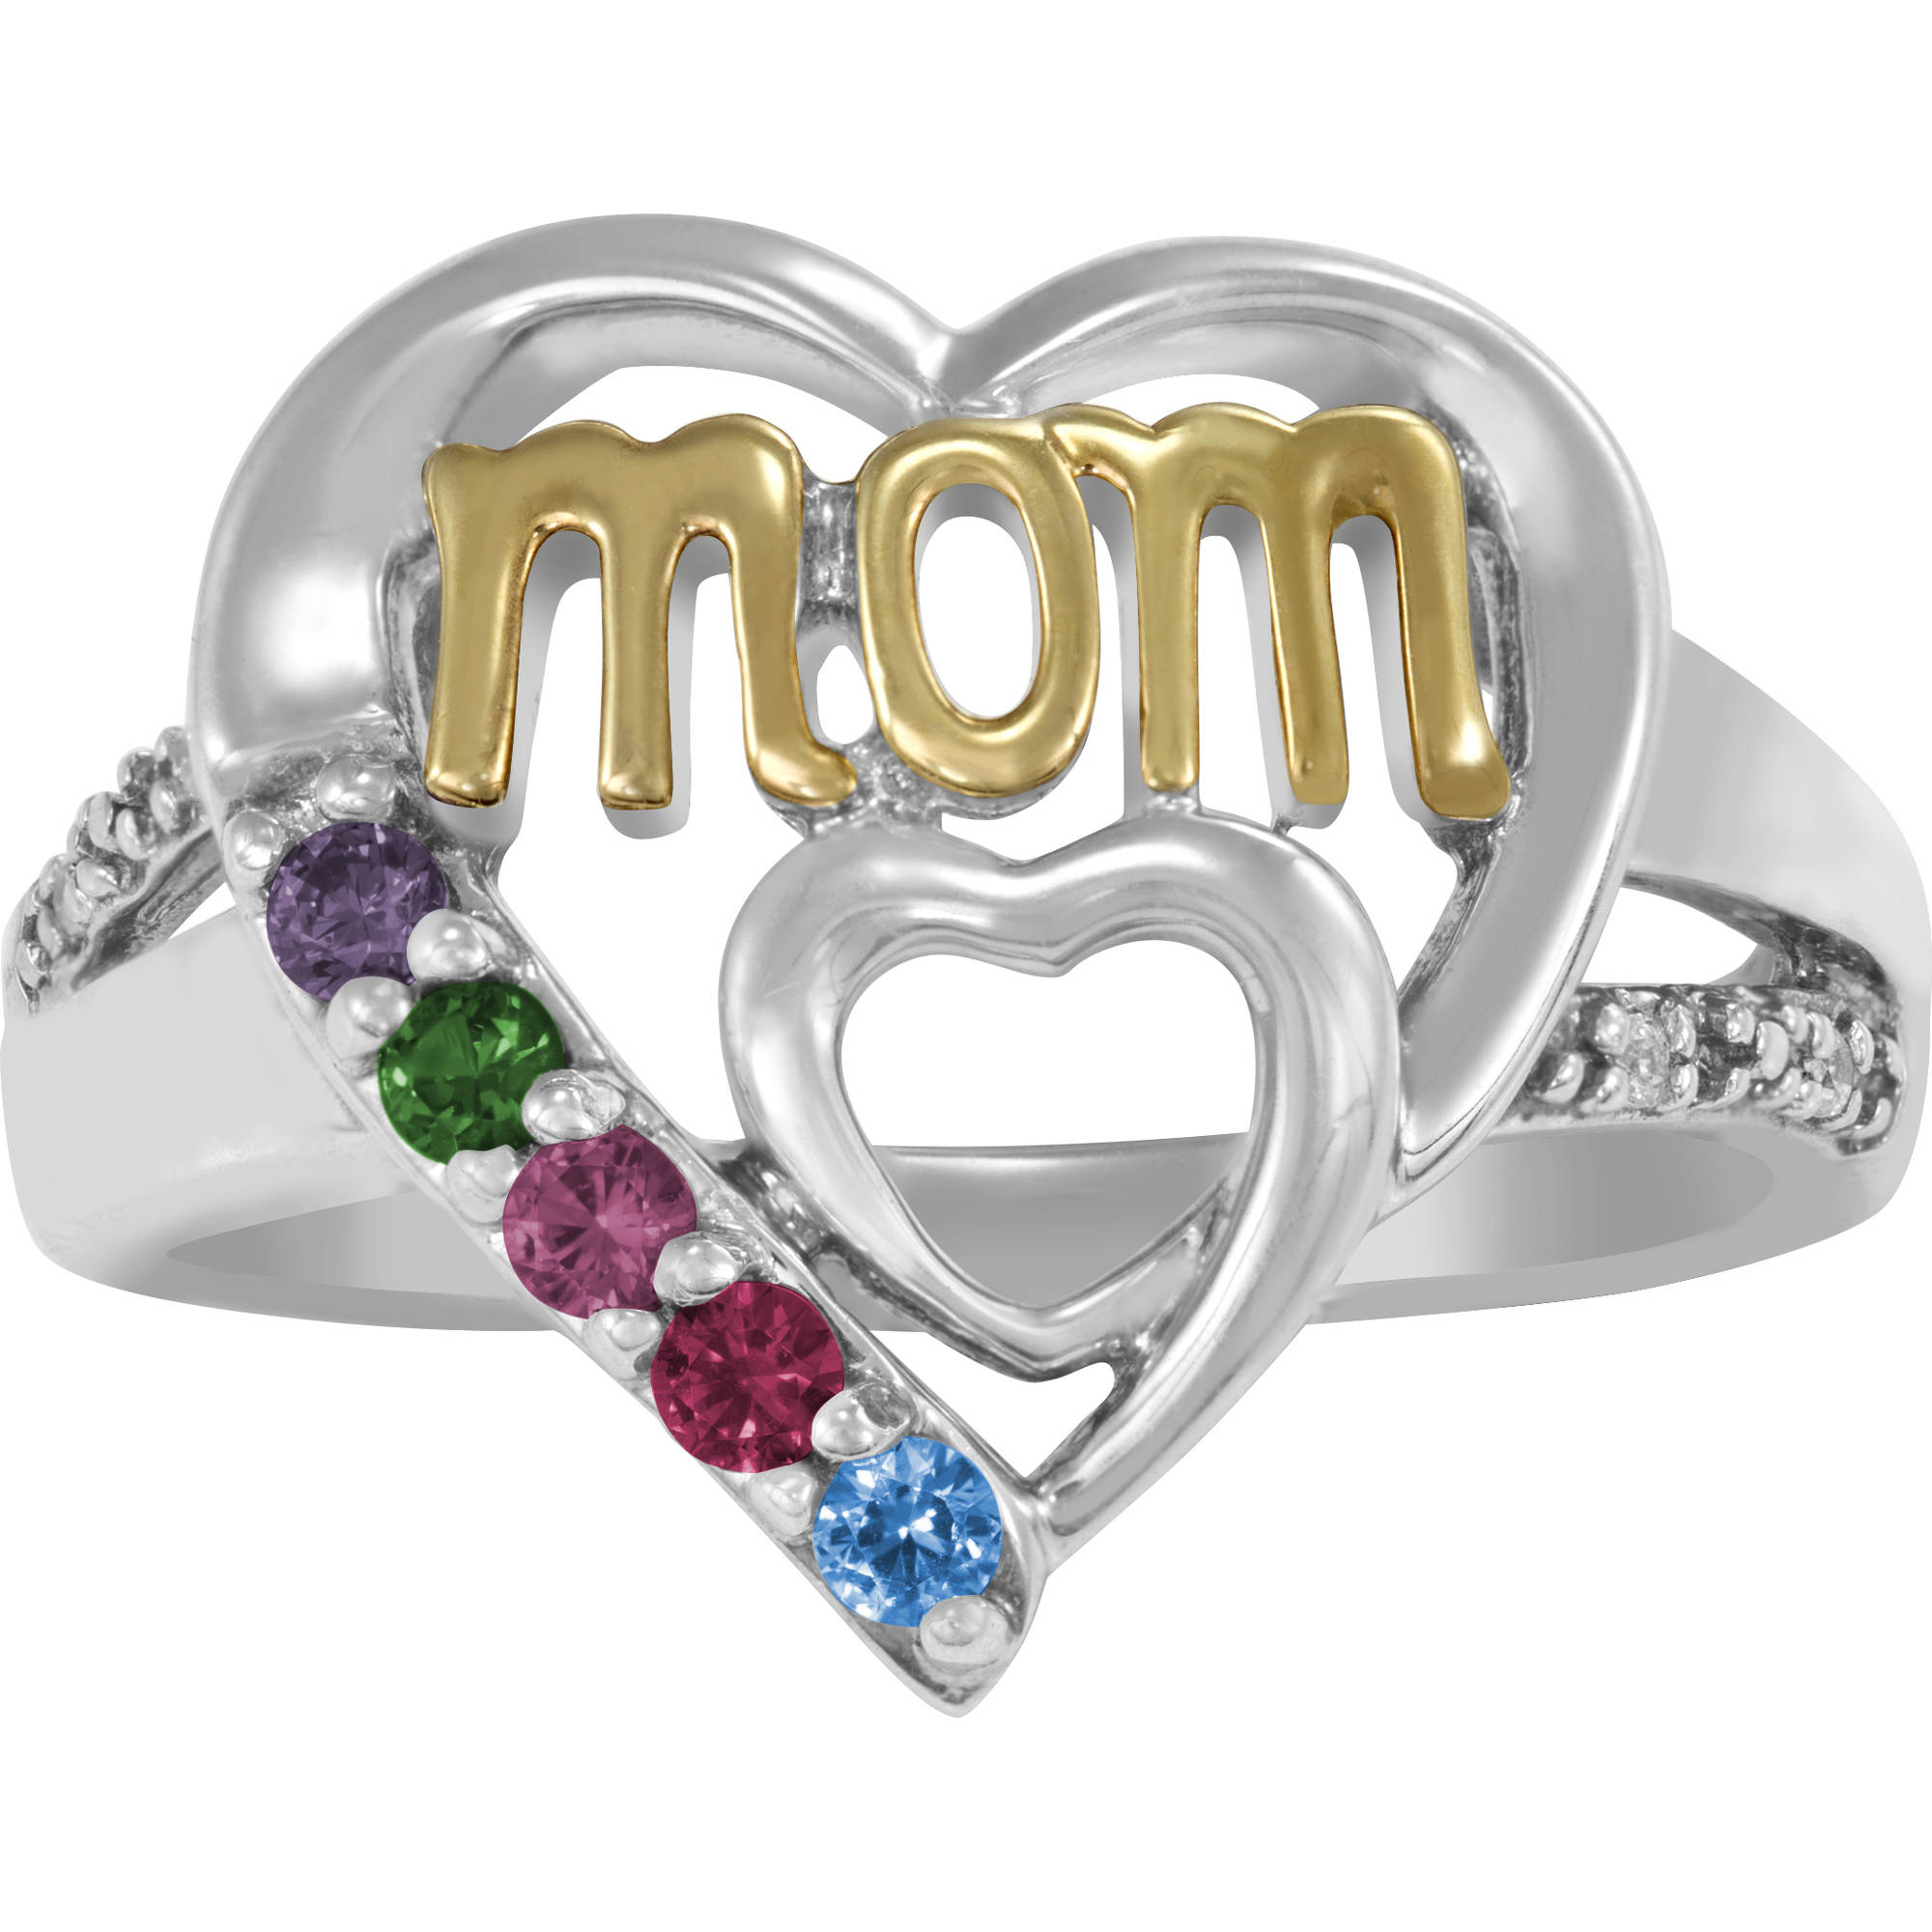 Keepsake Personalized Mom's Heart Birthstone Ring